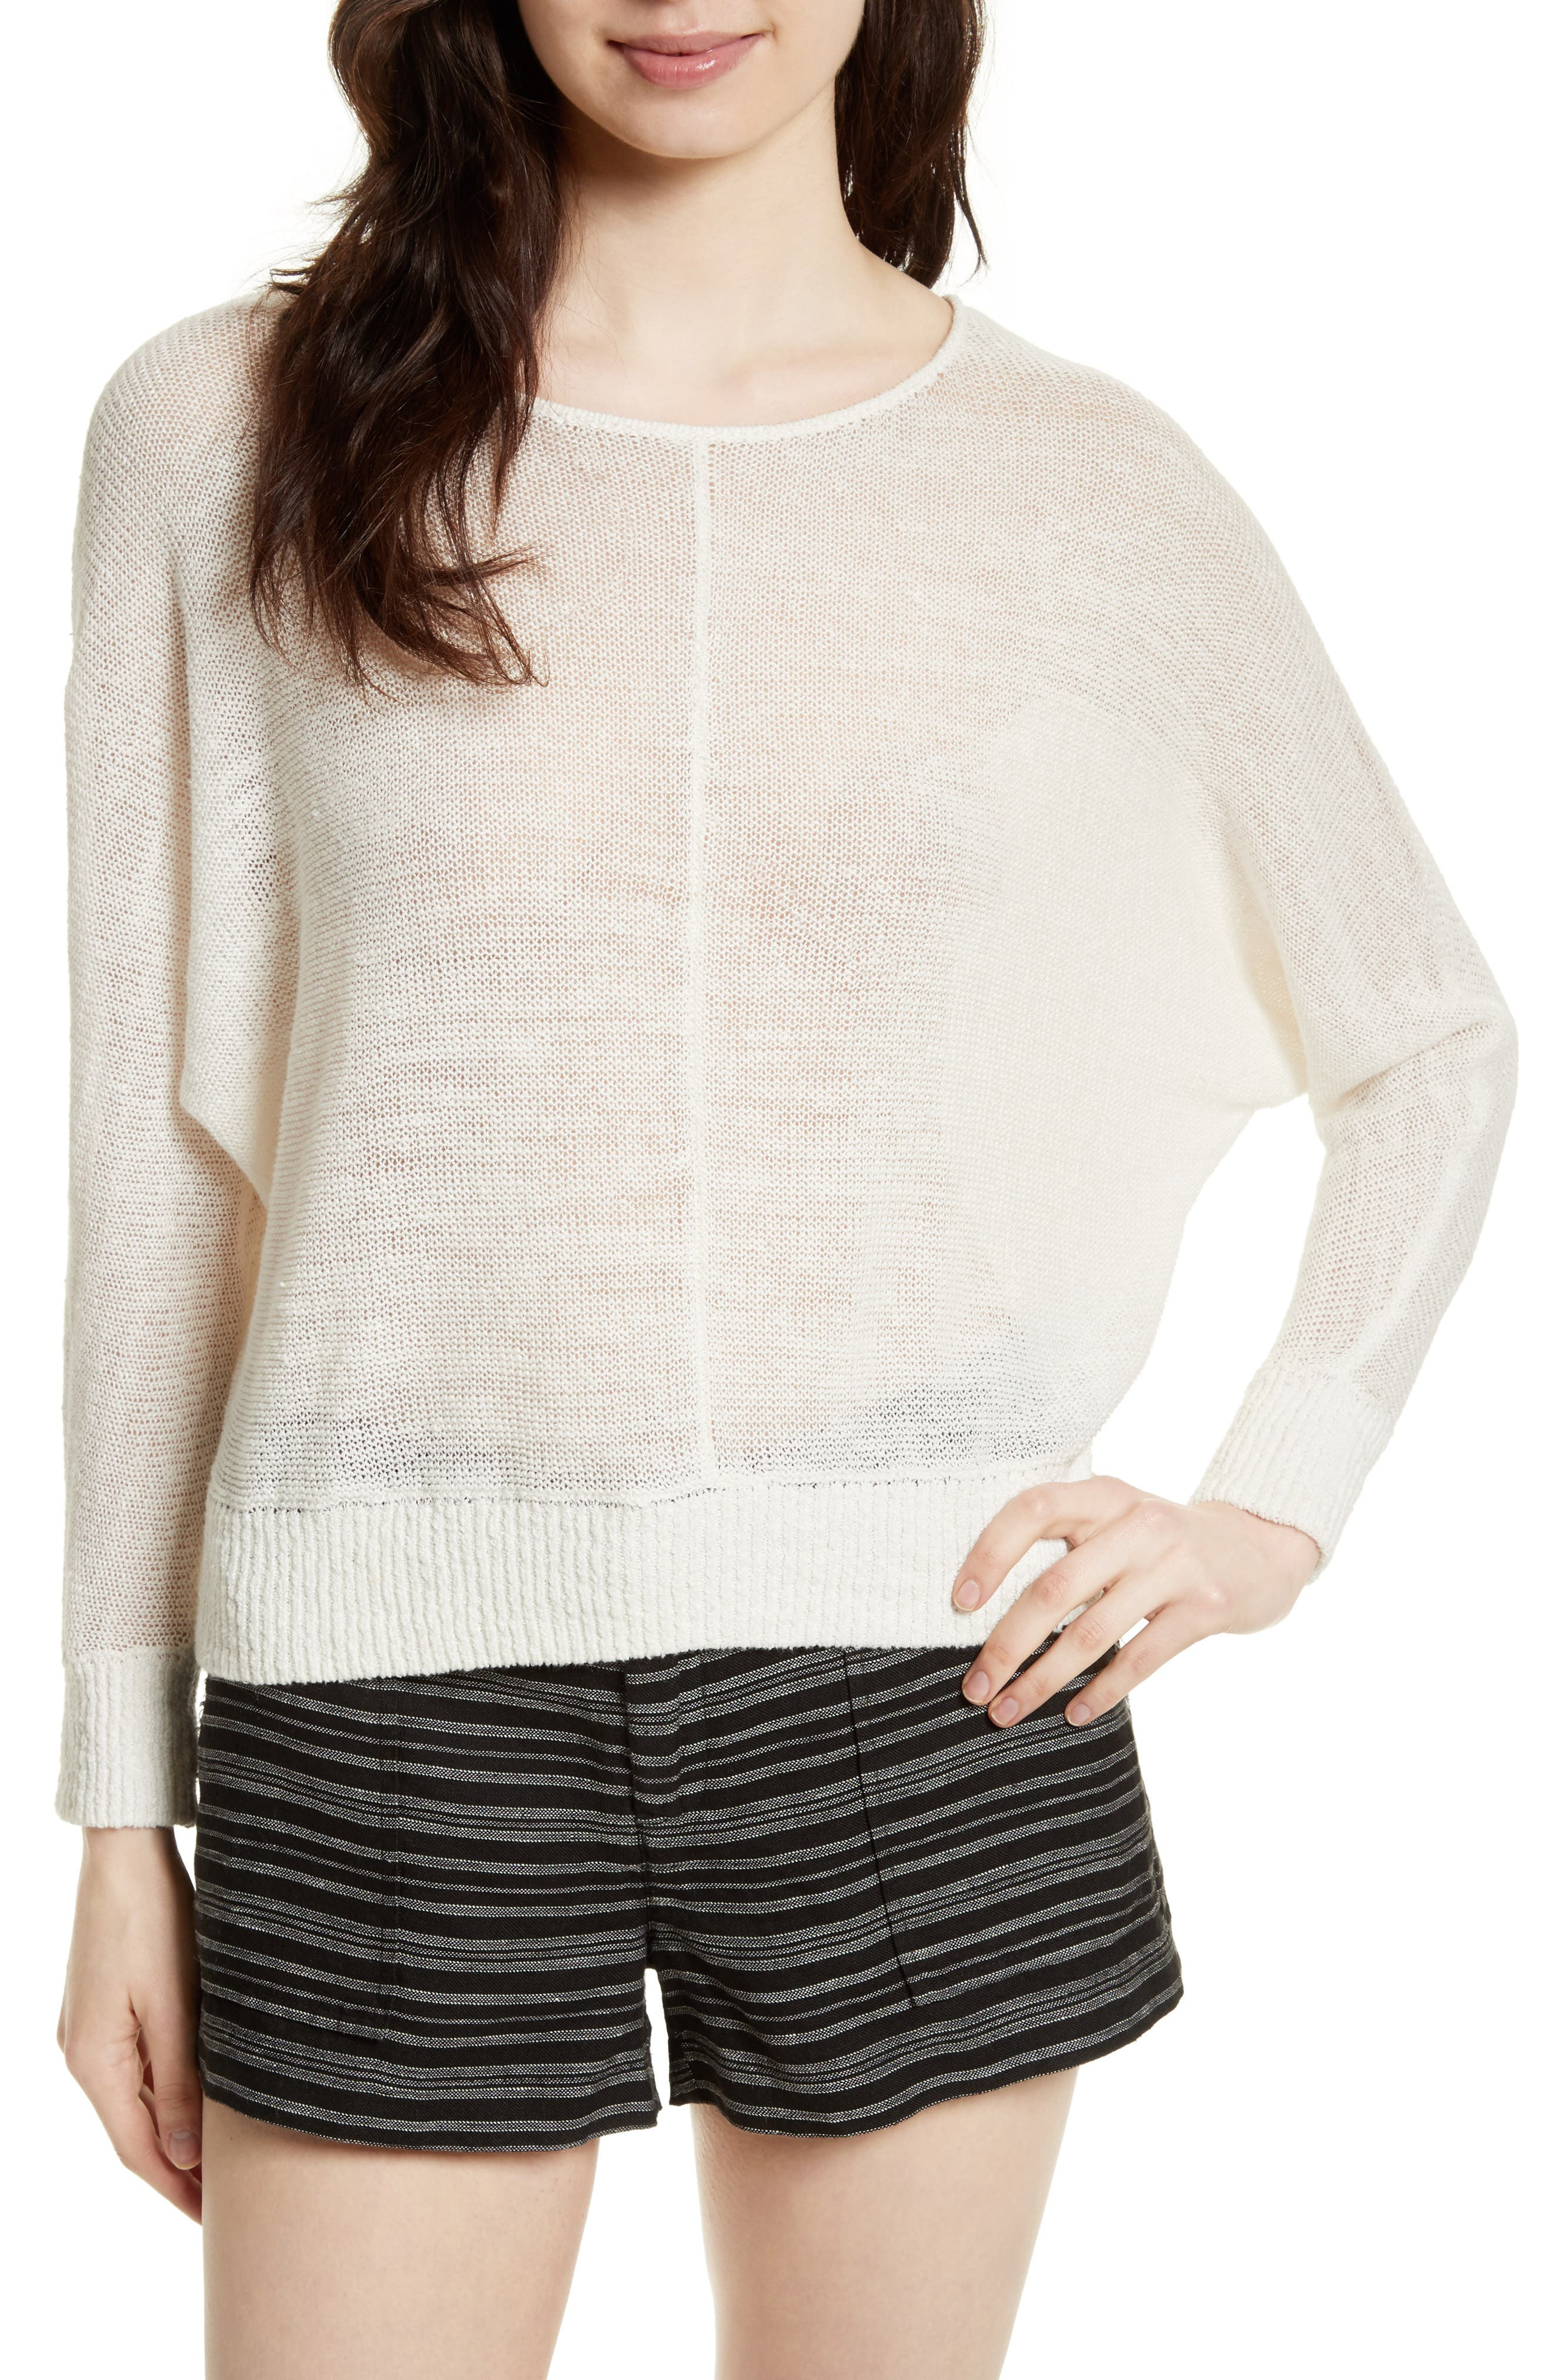 Clady Linen Open Knit Pullover,                             Main thumbnail 1, color,                             114